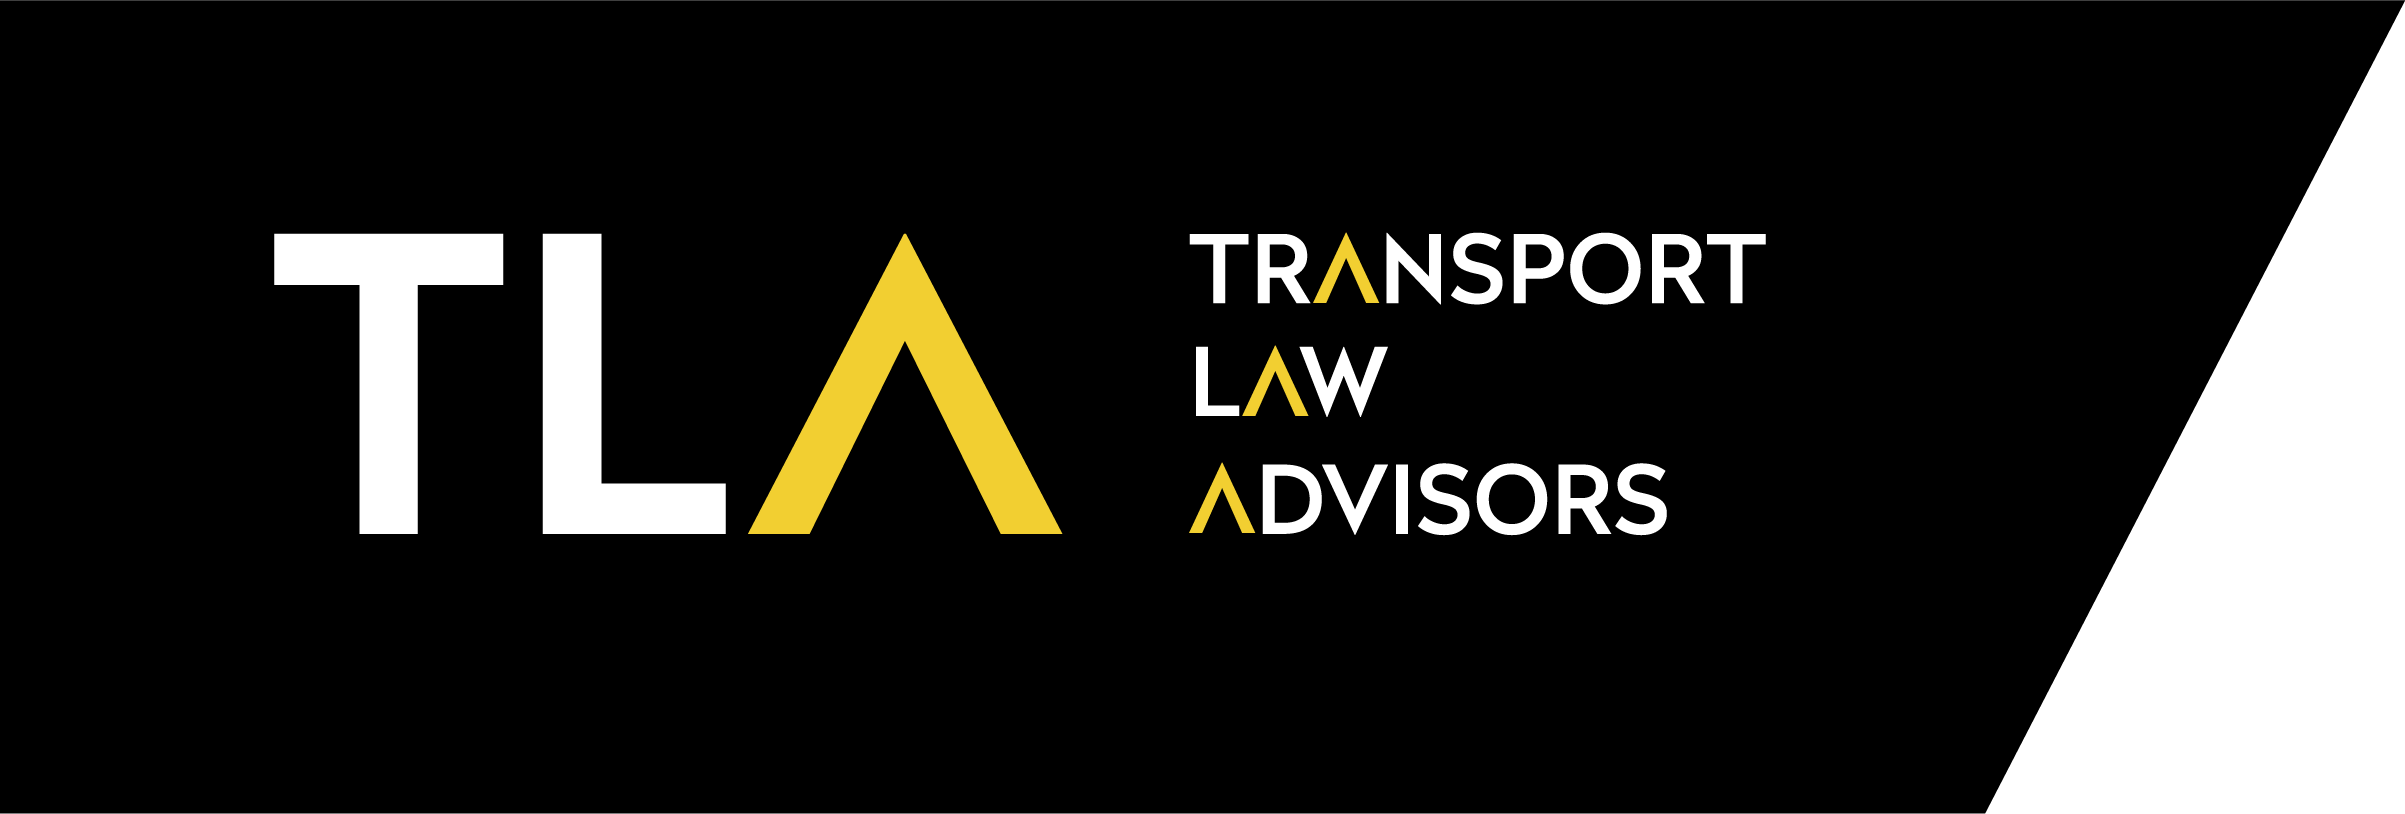 TL-A Transport Law Advistors